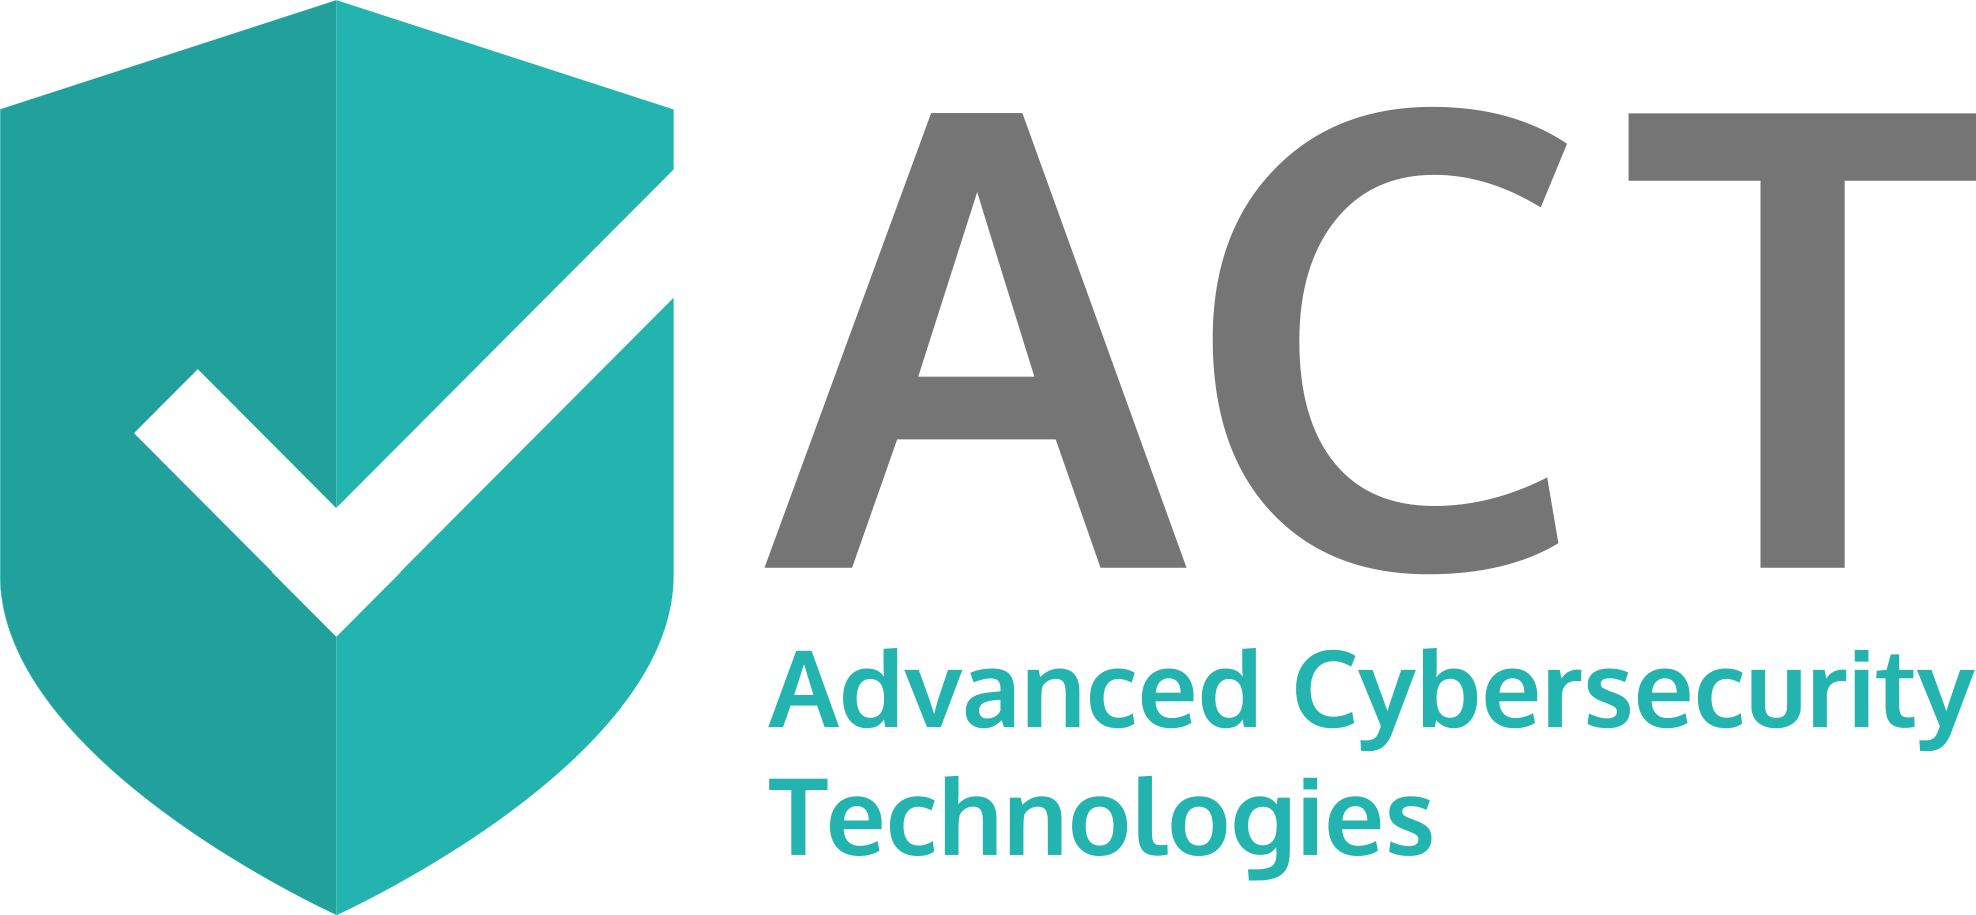 Advanced Cybersecurity Technologies Logo